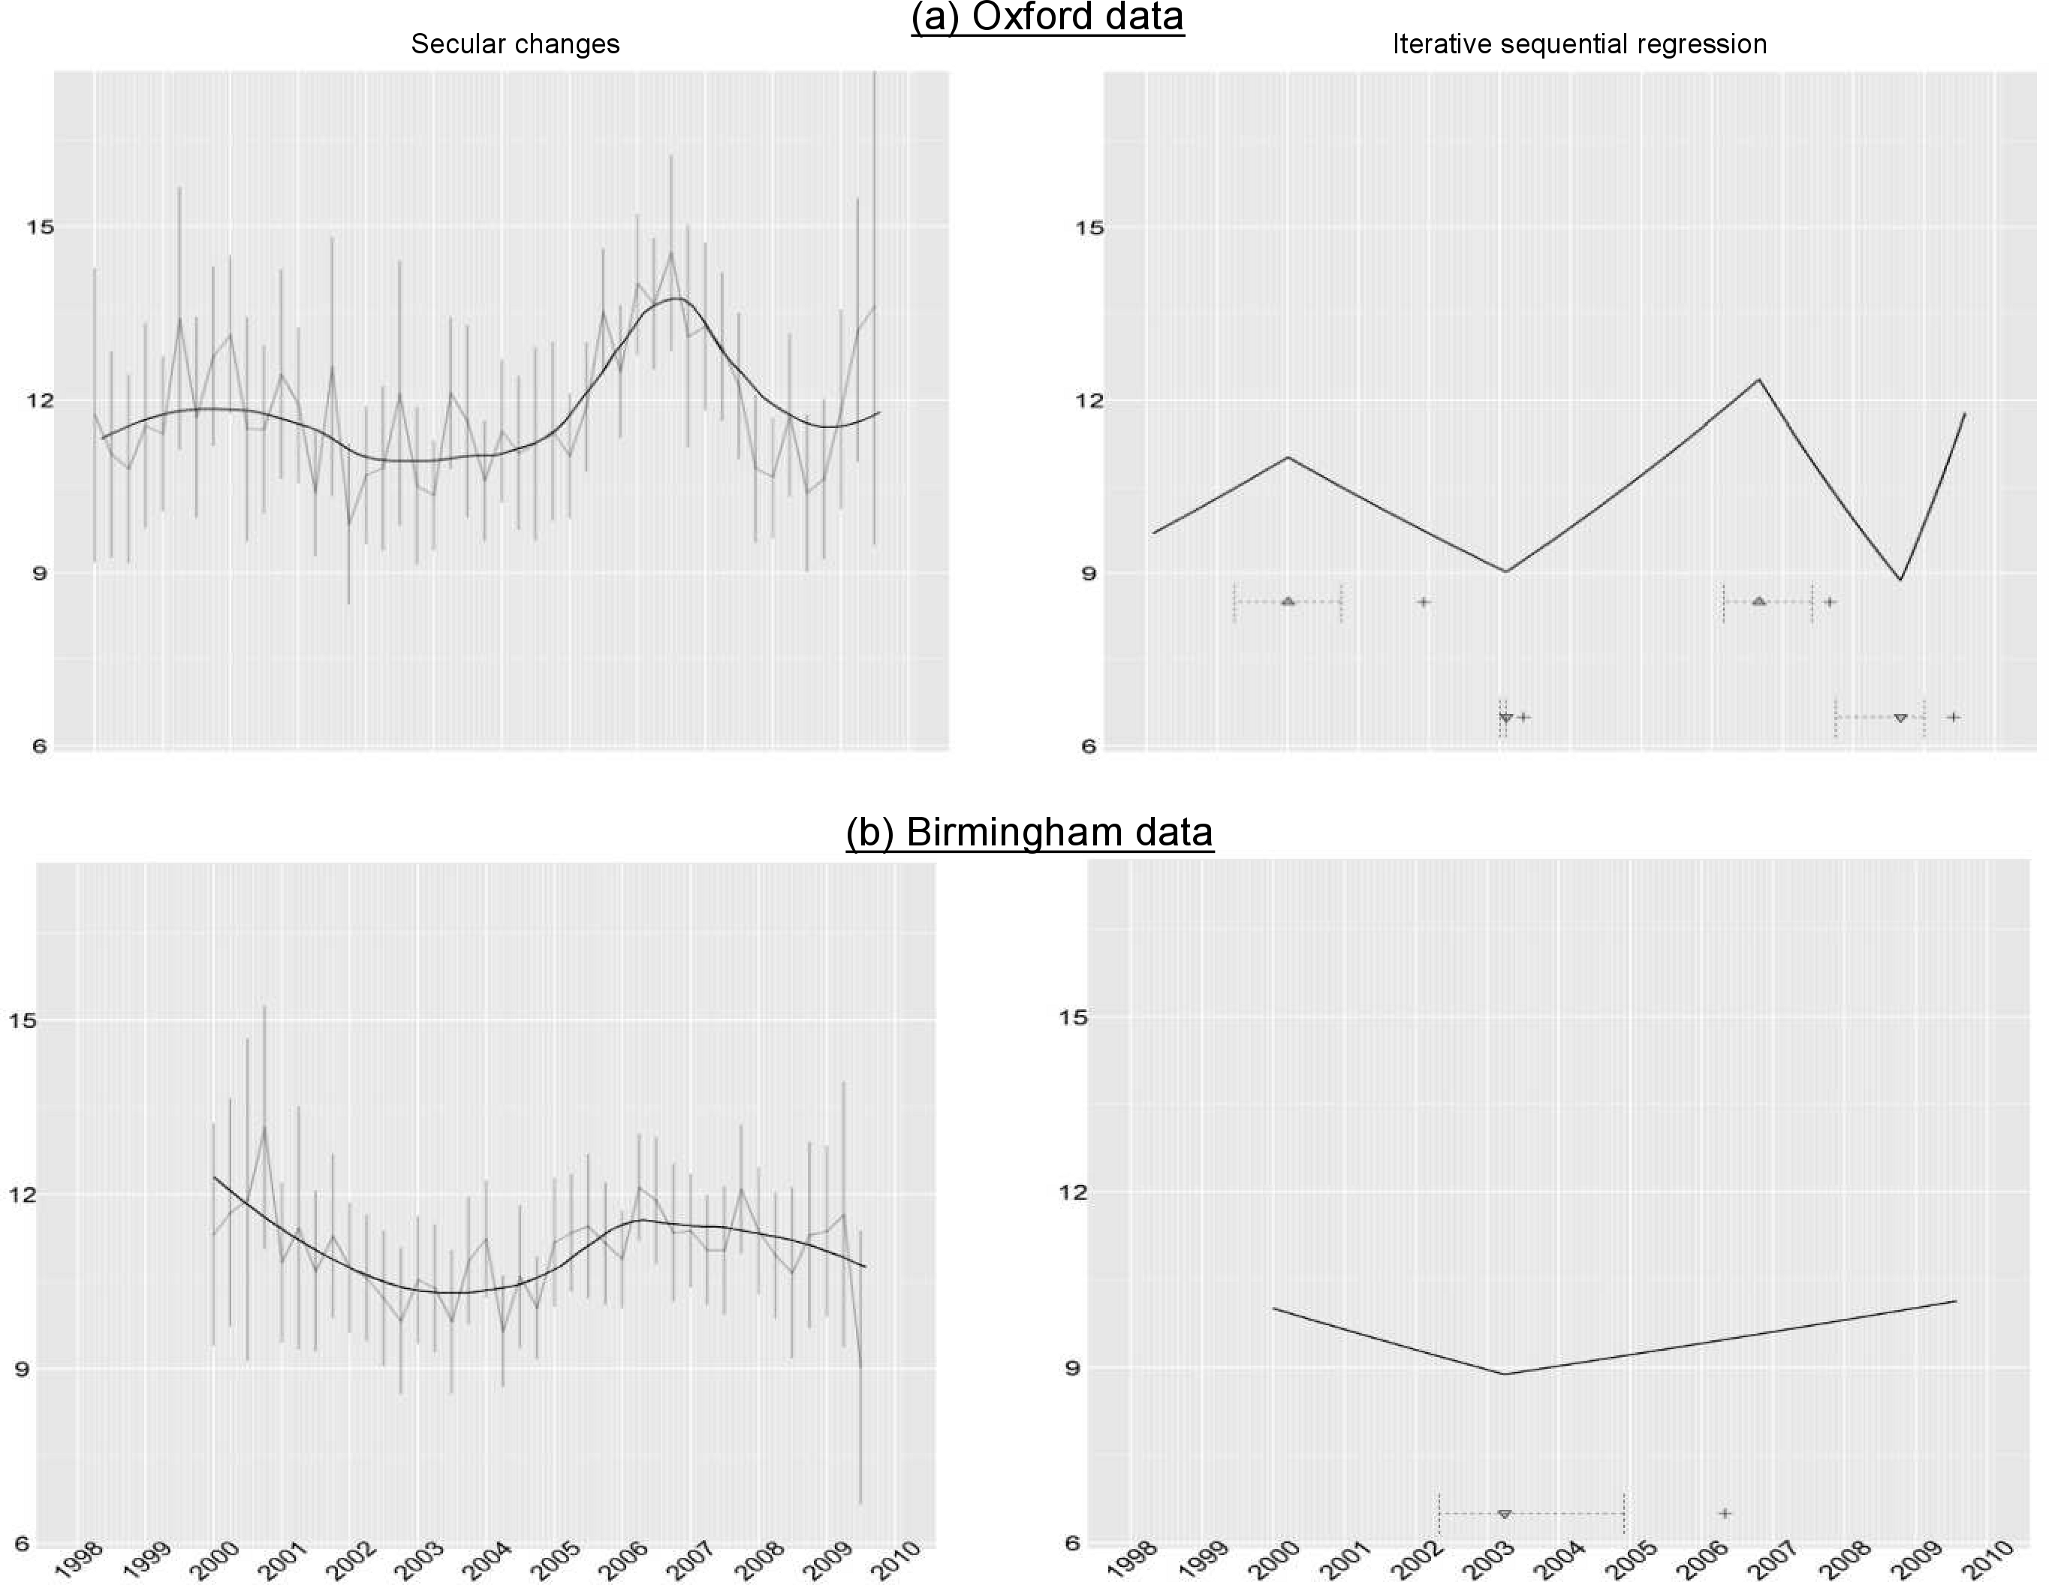 Comparison of secular changes in neutrophils across Oxford (top panels) and Birmingham (bottom panels) hospitals.